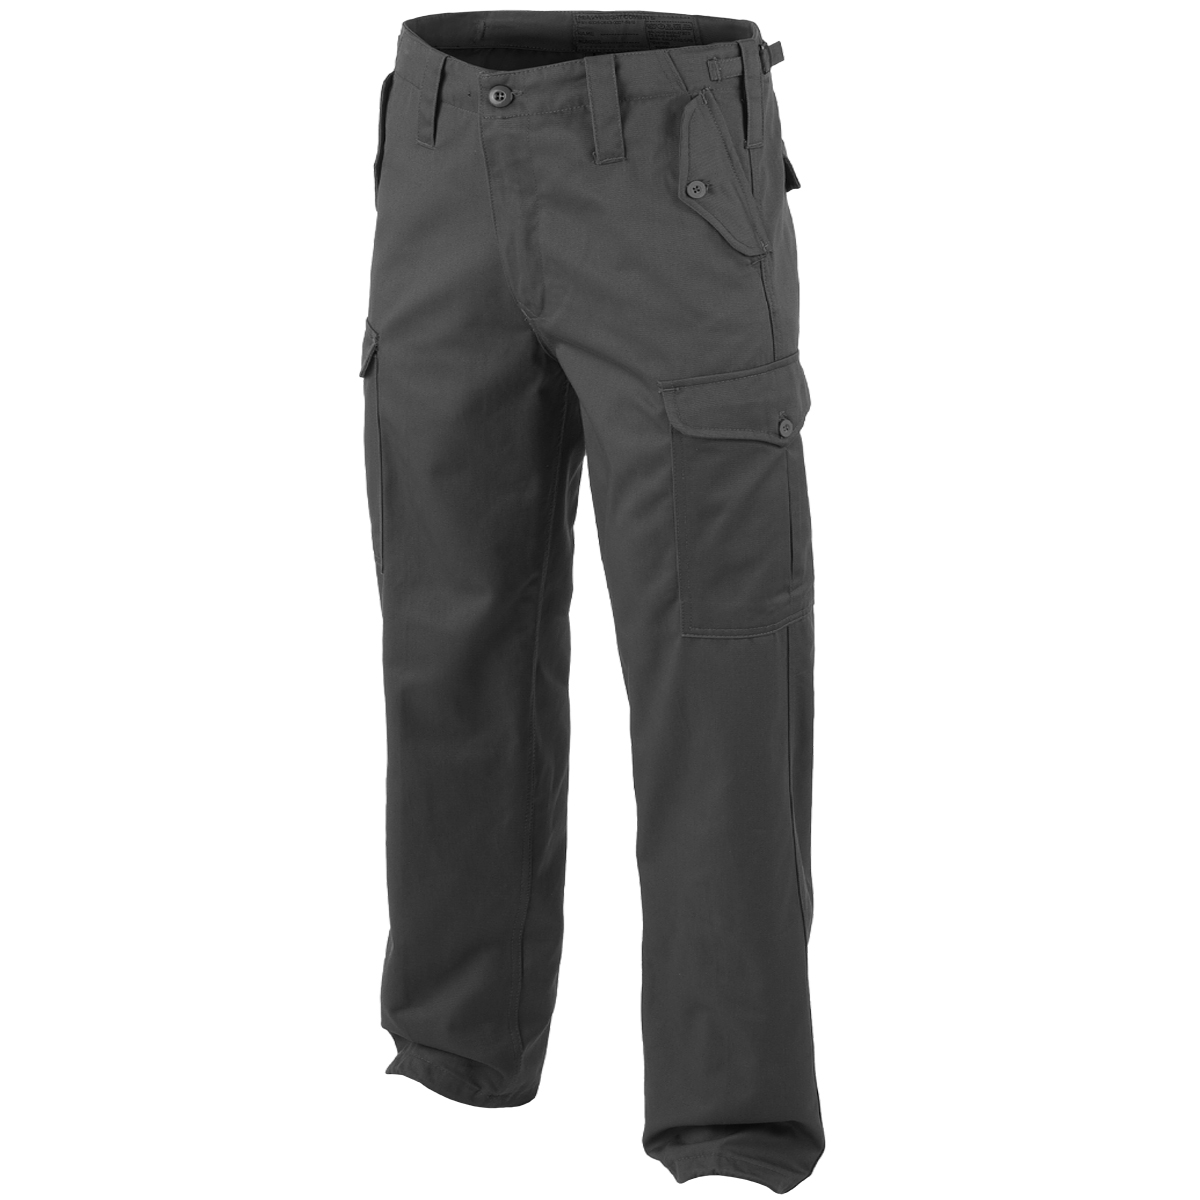 Highlander Heavy Weight Patrol Combats Mens Cargo Trousers